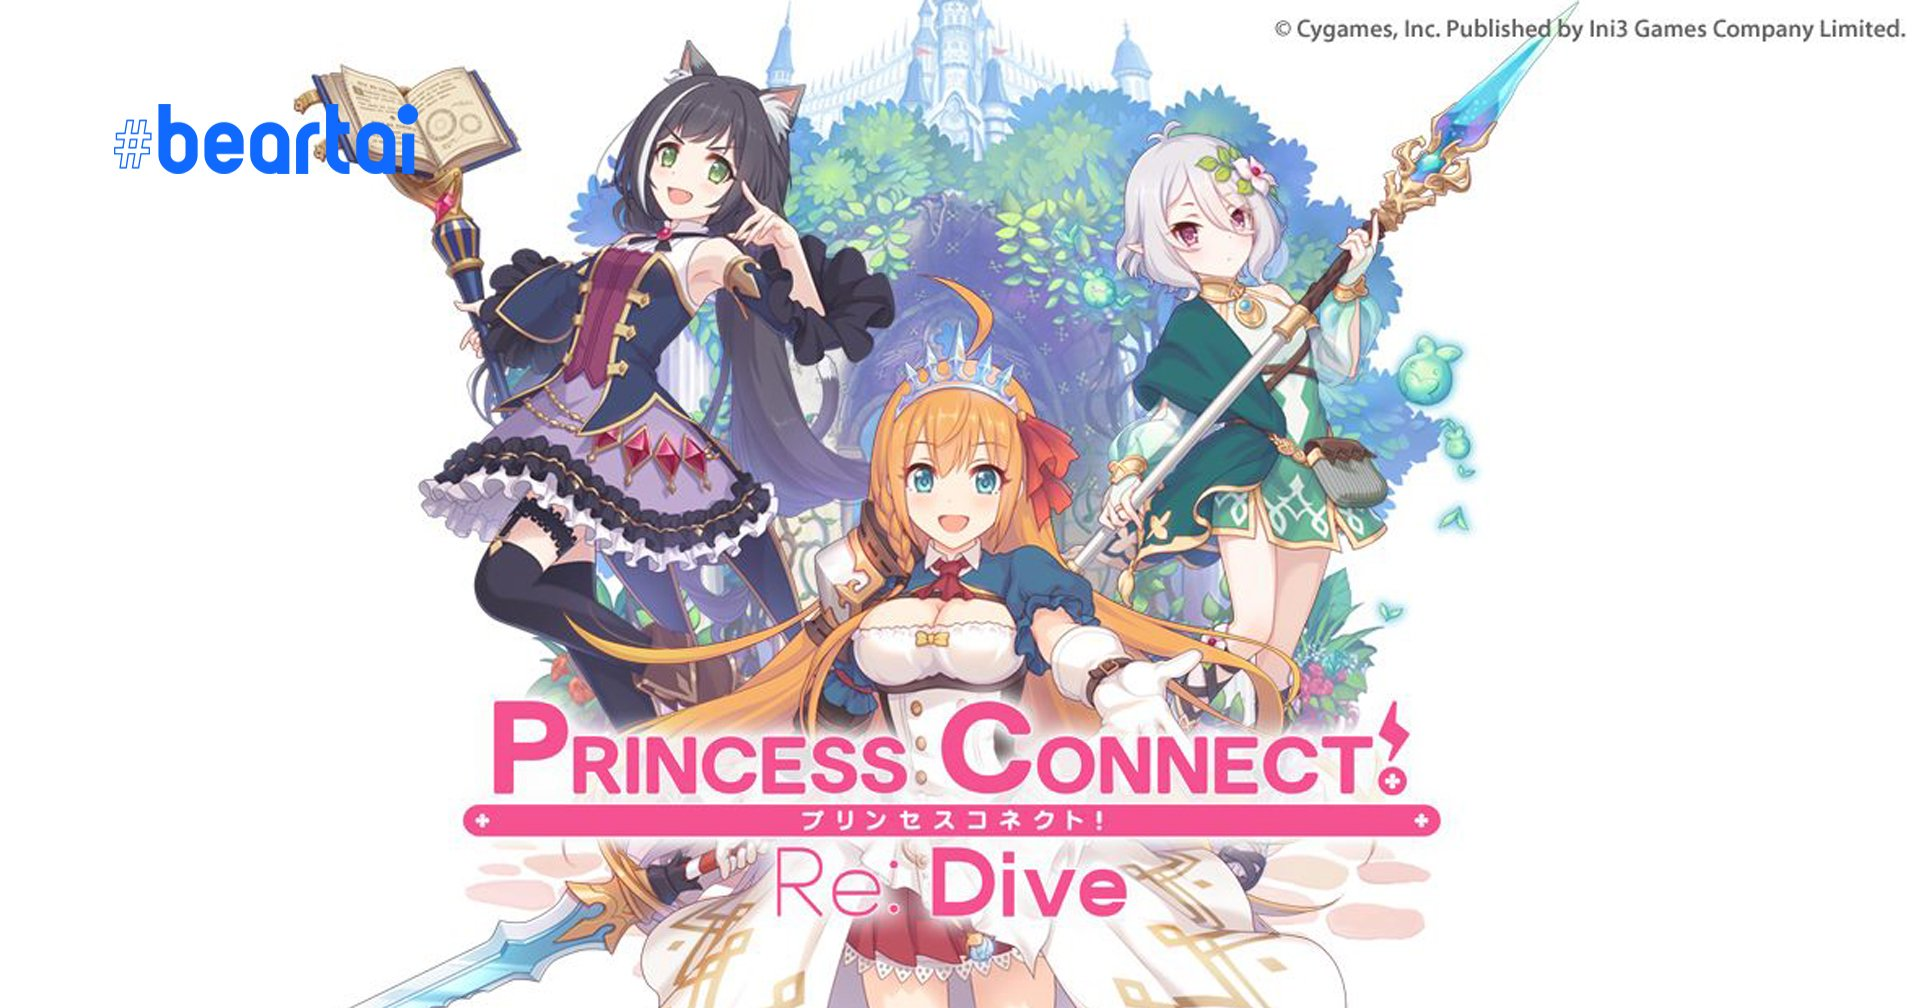 Princess Connect Re: Dive